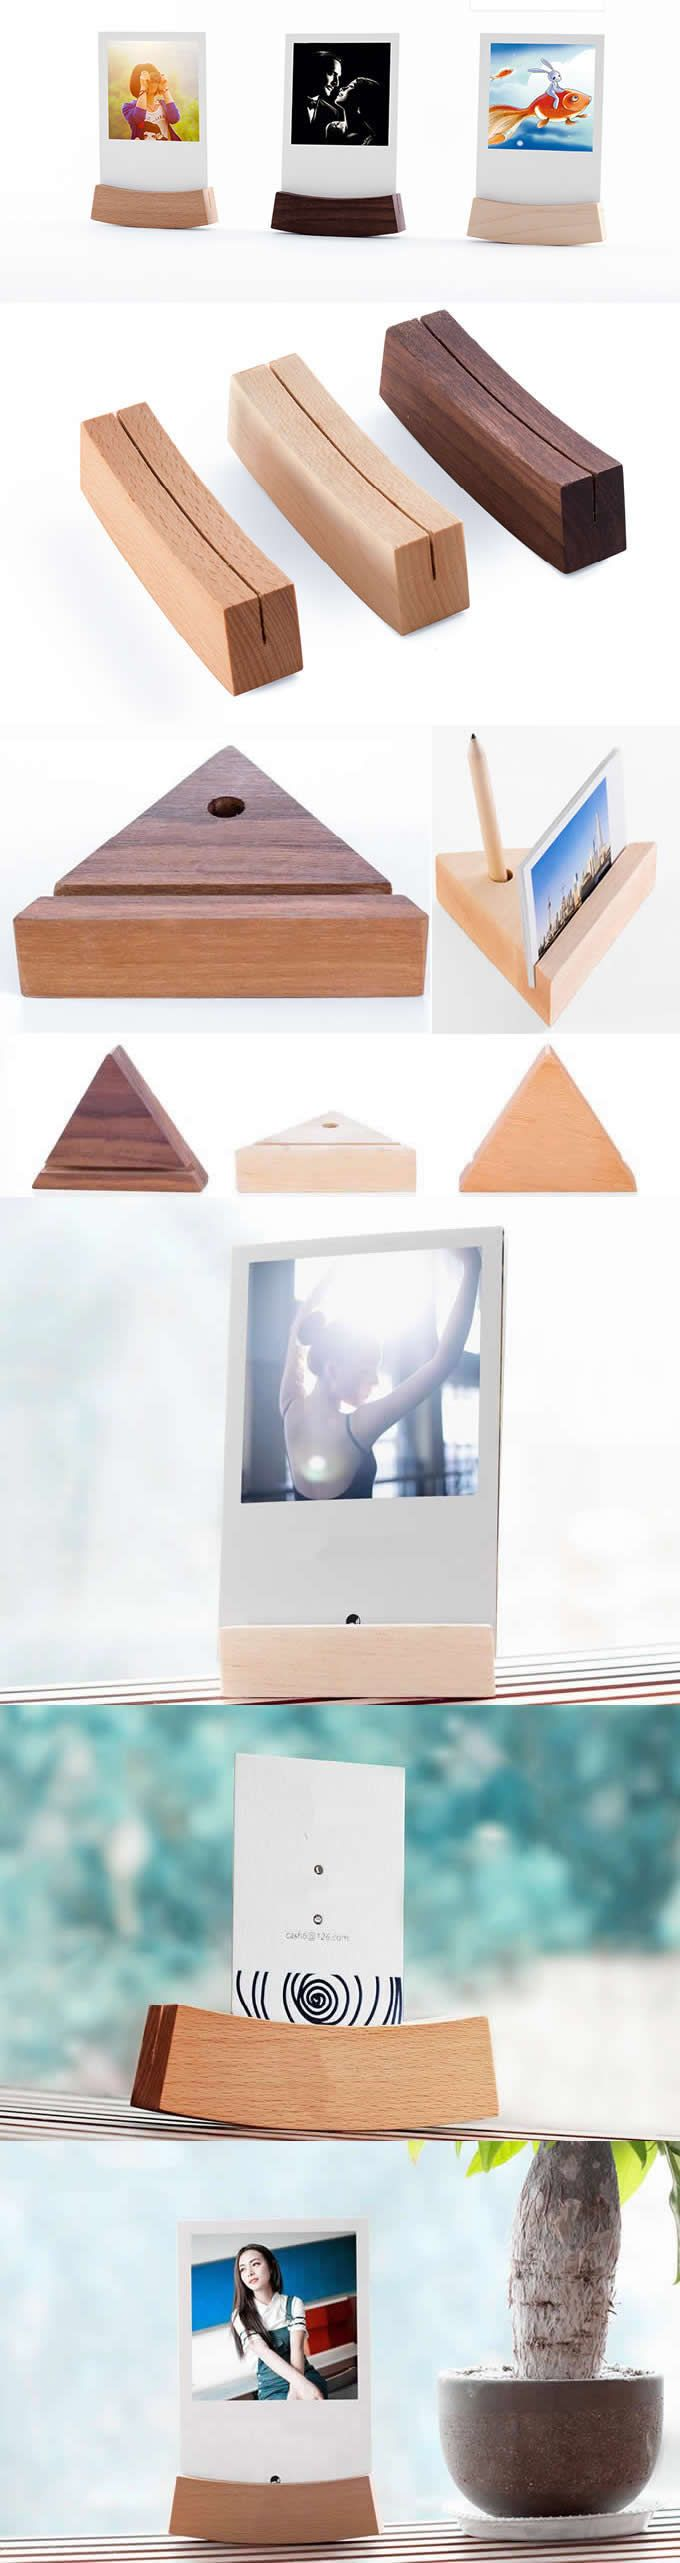 Wooden Wedding Place Card Holders Or Photo Card Holders Business Card Stand Holder Office Desk Organizer